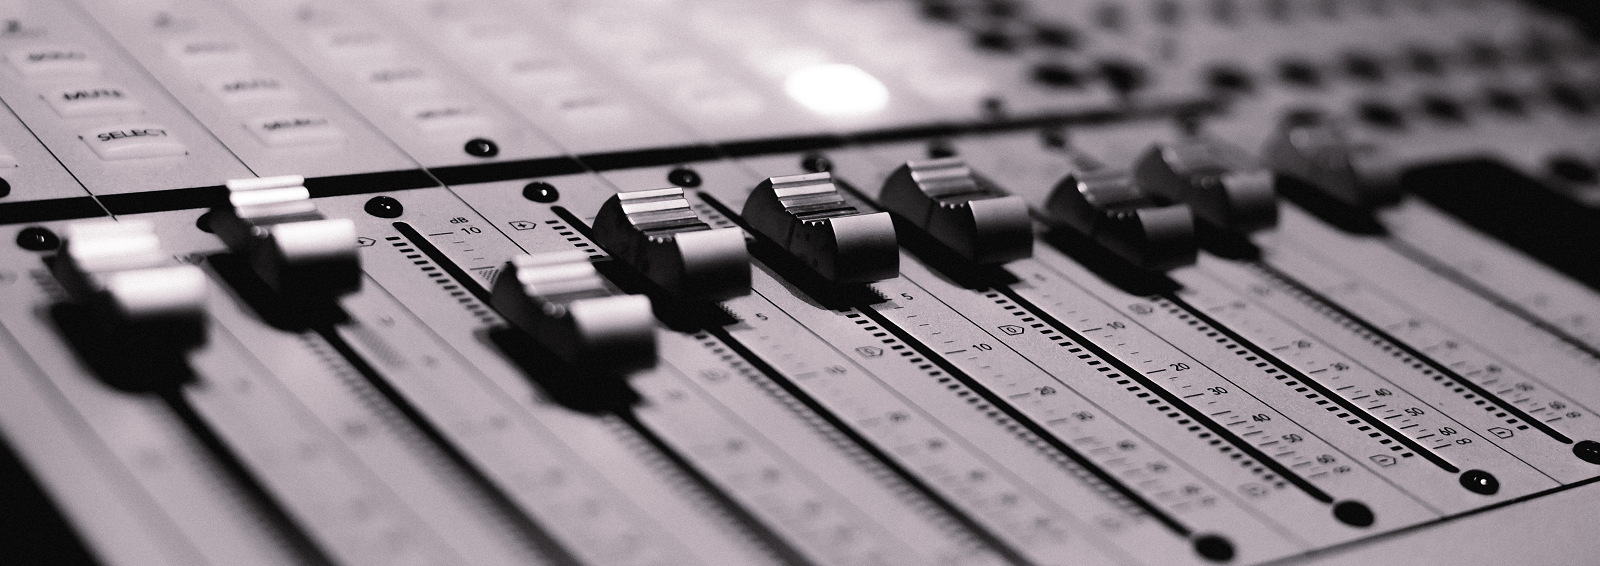 DB2_9678 faders 2.png